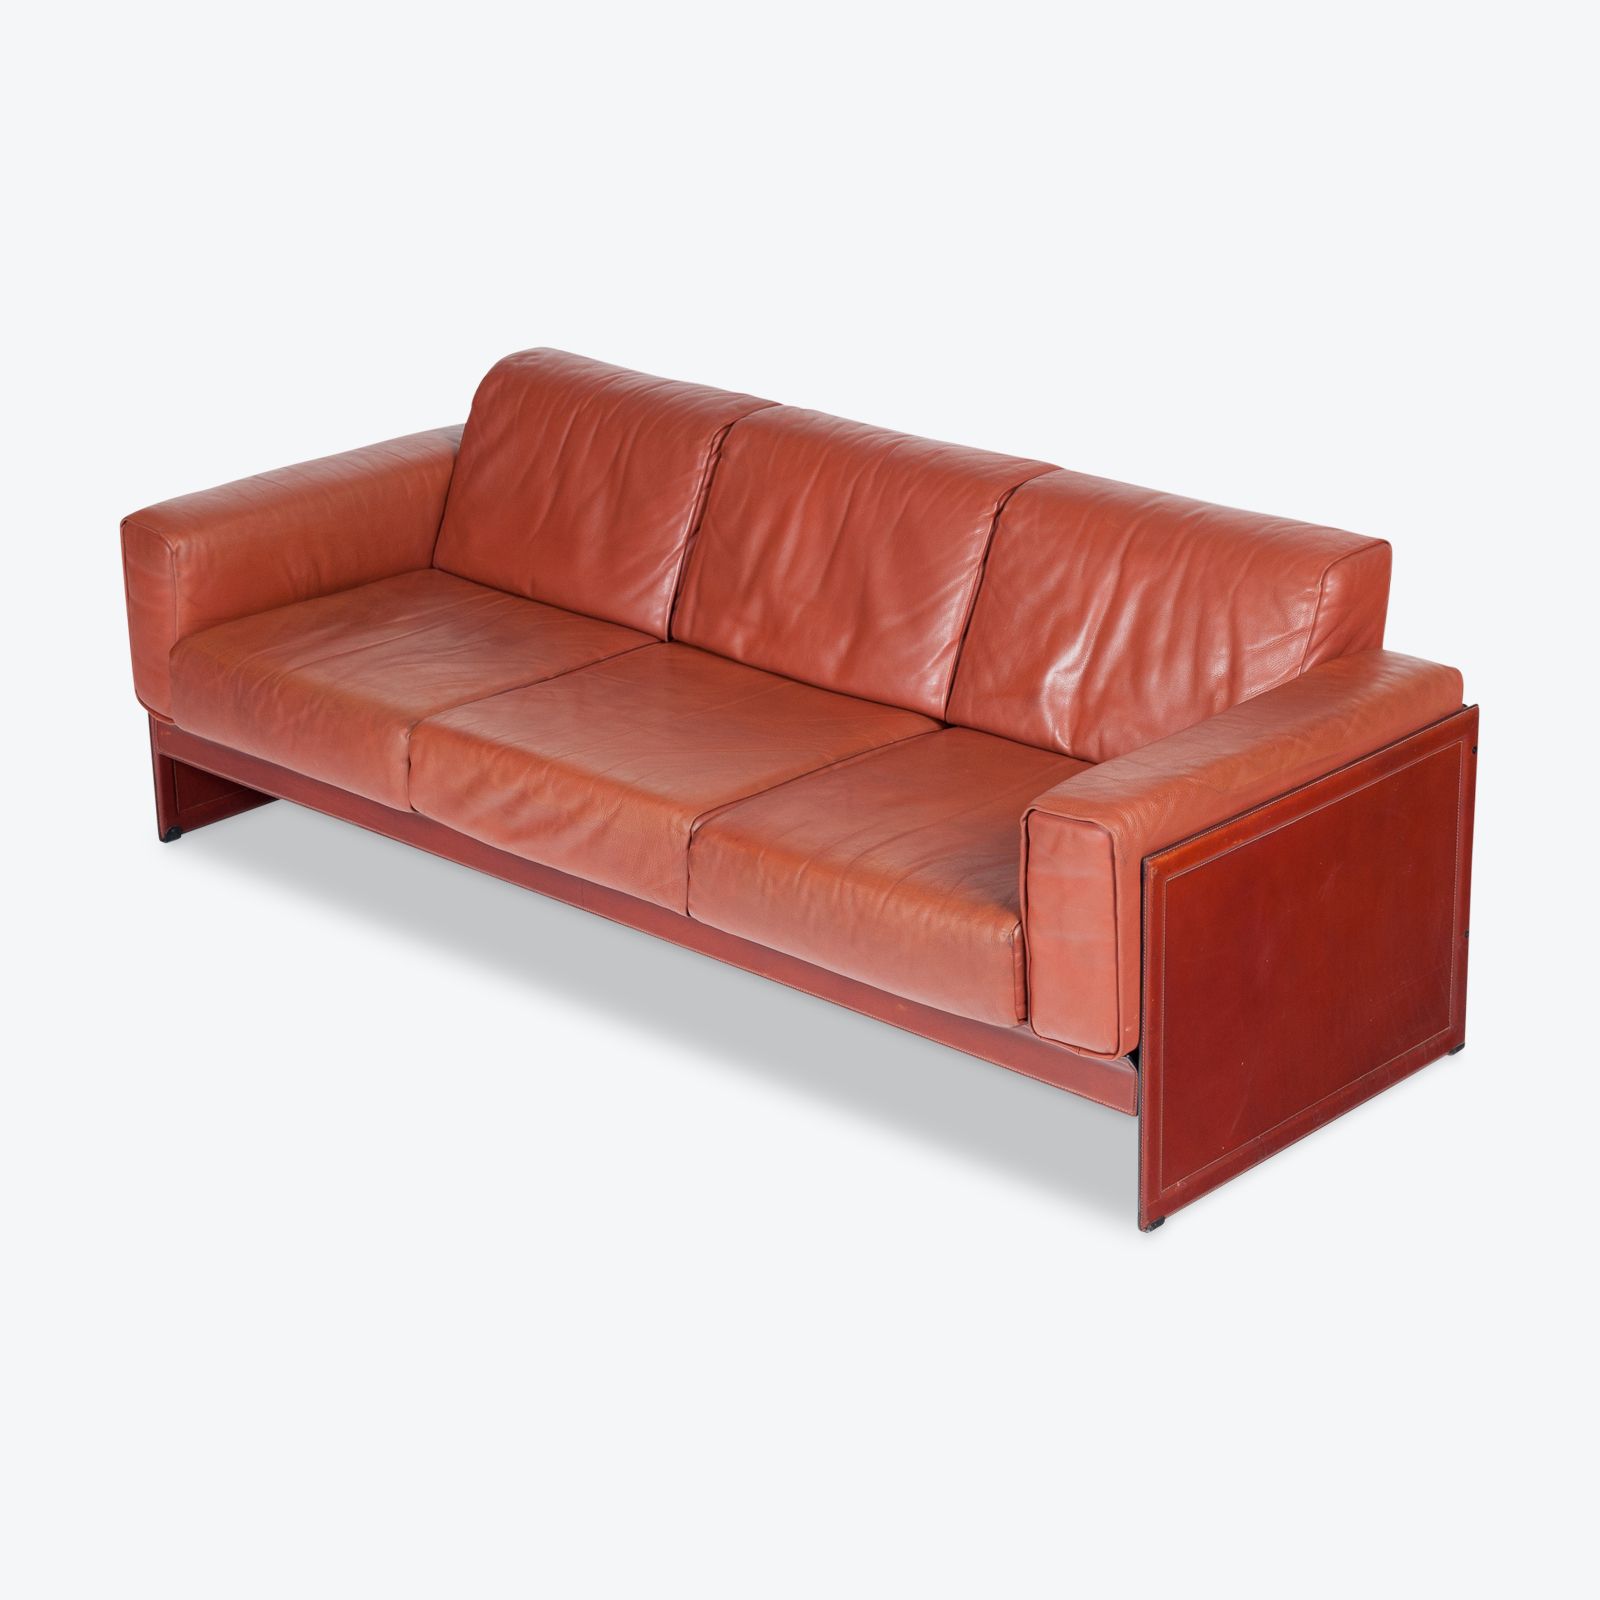 3 Seat Sofa In Leather By Matteo Grassi, 1980s, Italy Hero